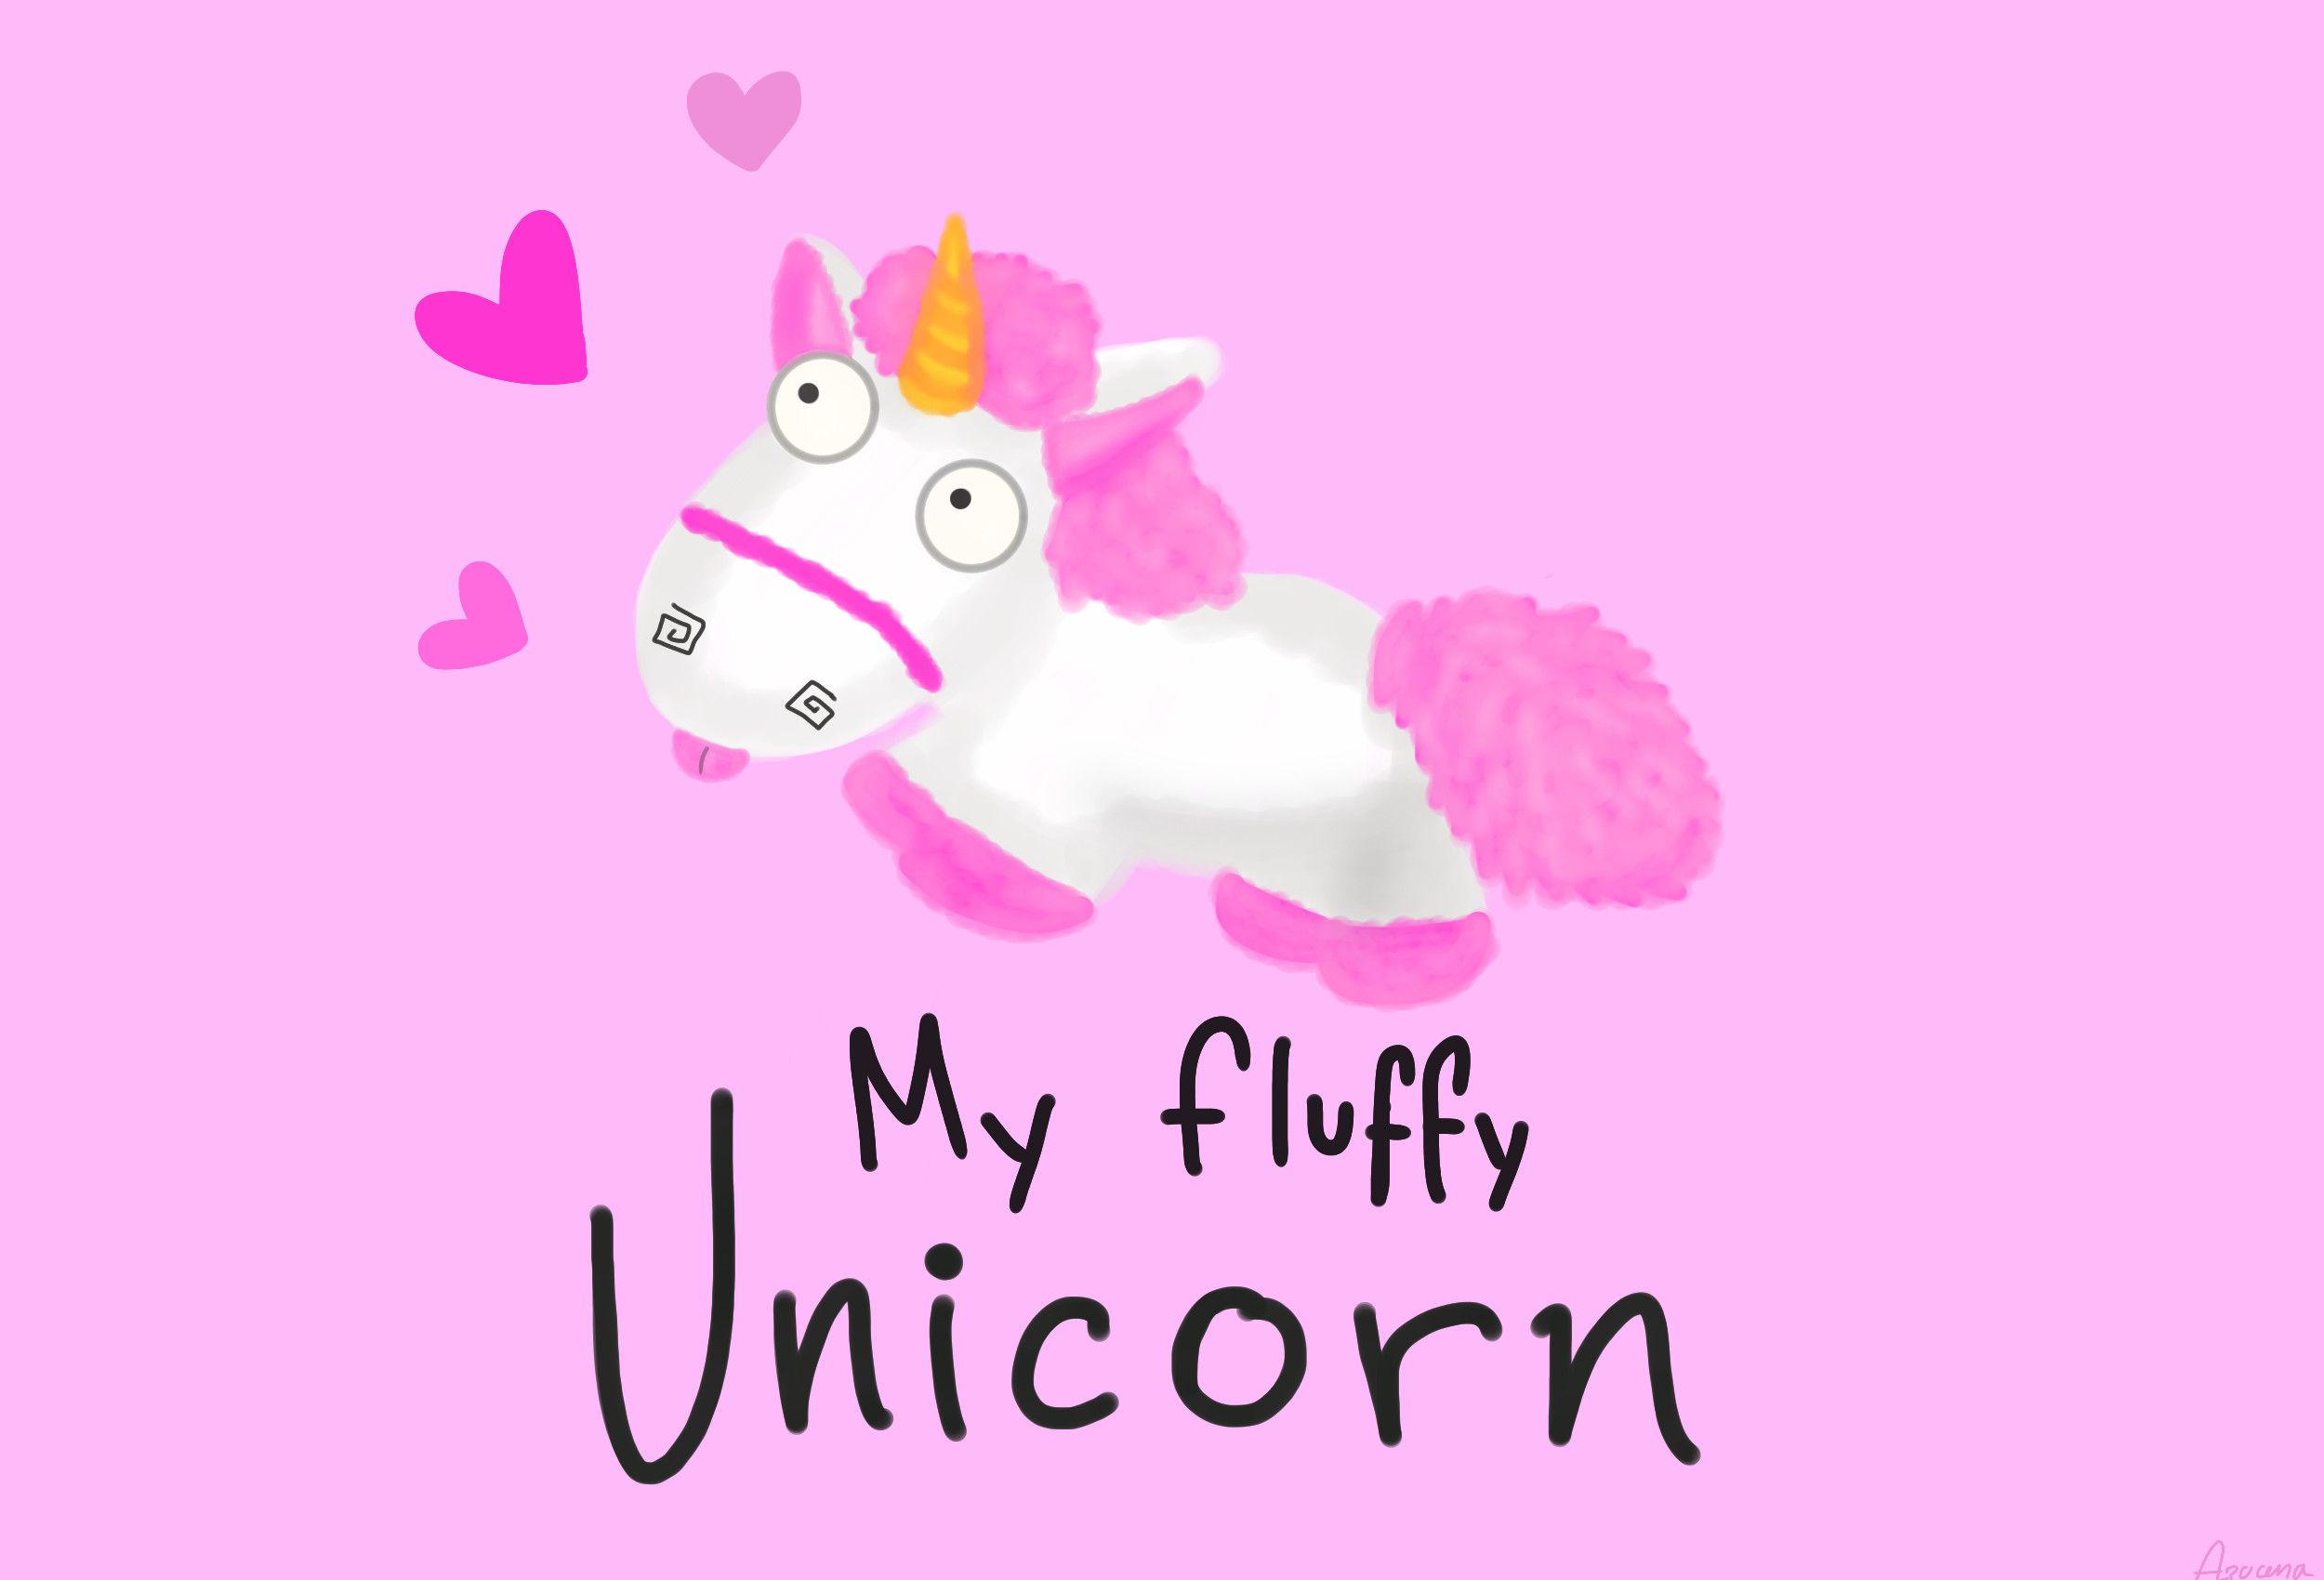 Cute Minions Wallpaper Quotes Unicorn Wallpaper 65 Images